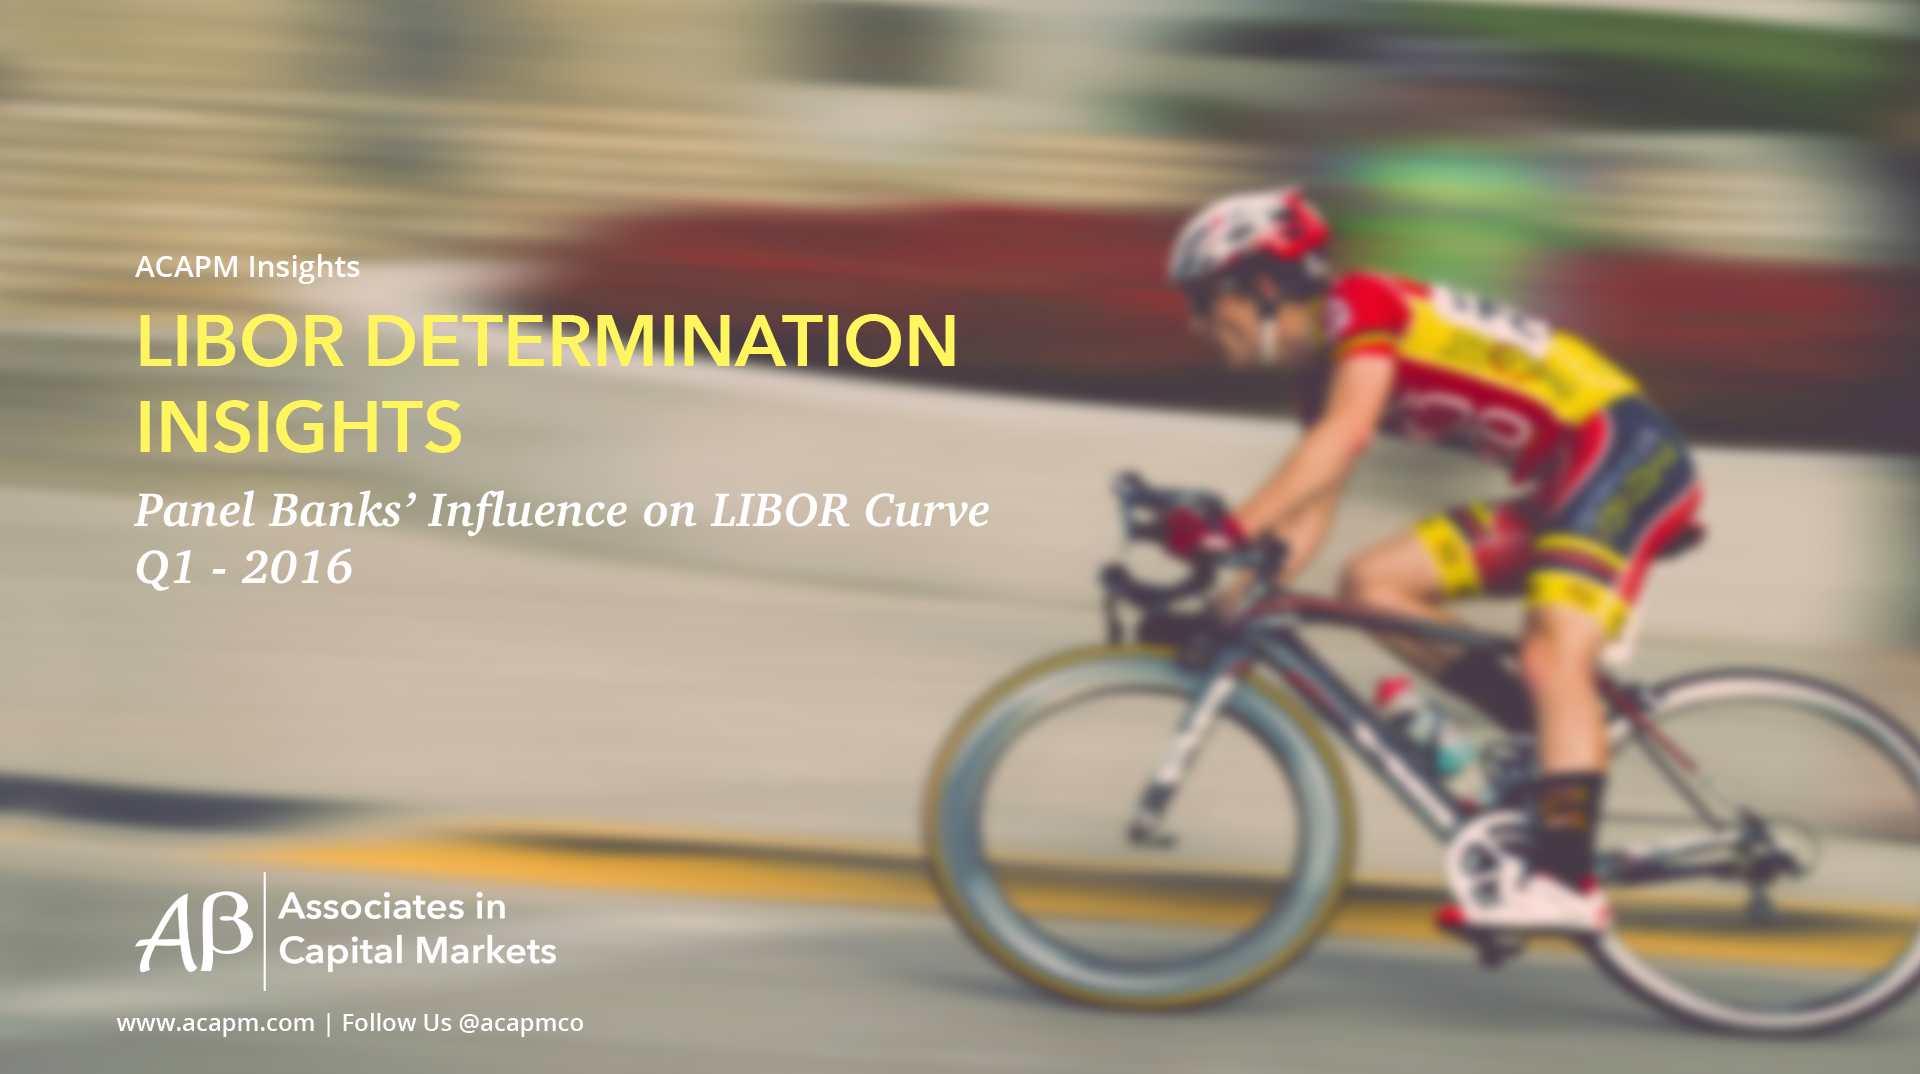 LIBOR Determination Insights Q1 2016